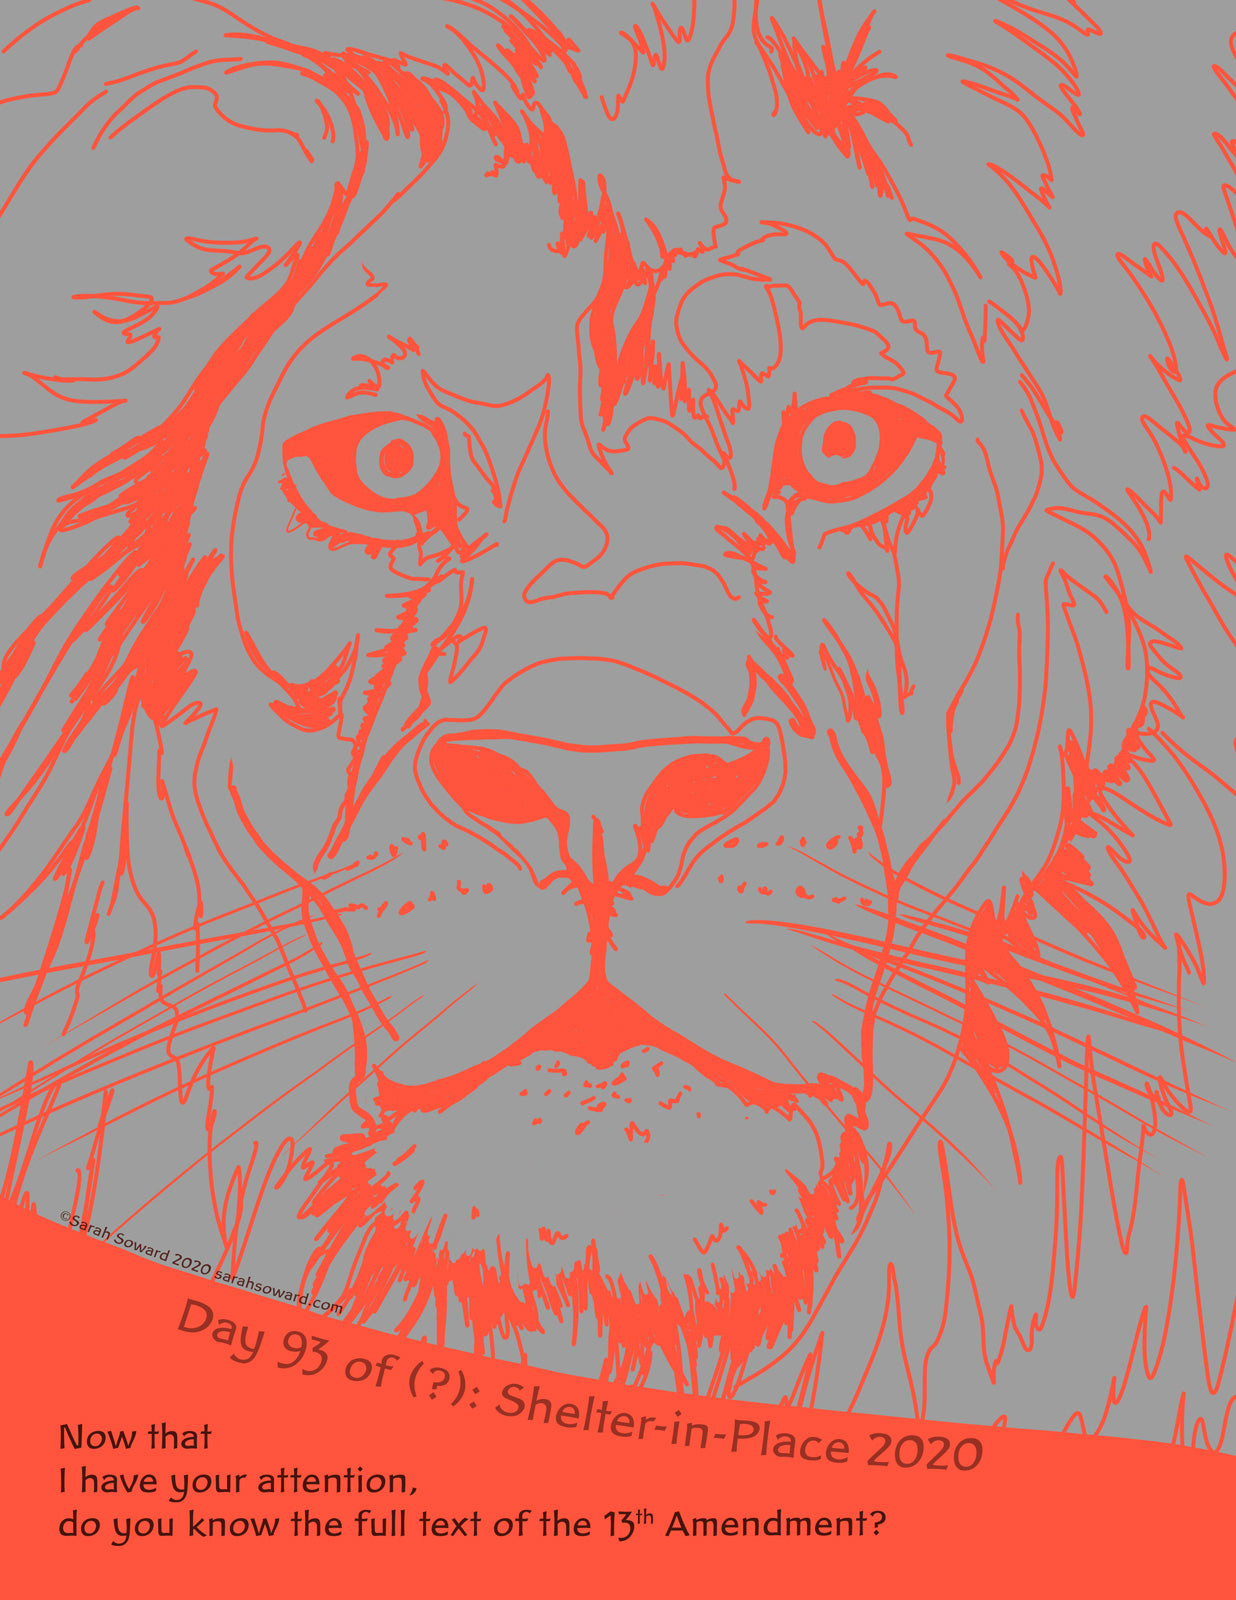 Line drawing of a lion's head, full front view, in electric orange on a grey background. The text on the image reads, Now that I have your attention, do you know the full text of the 13th Amendment?